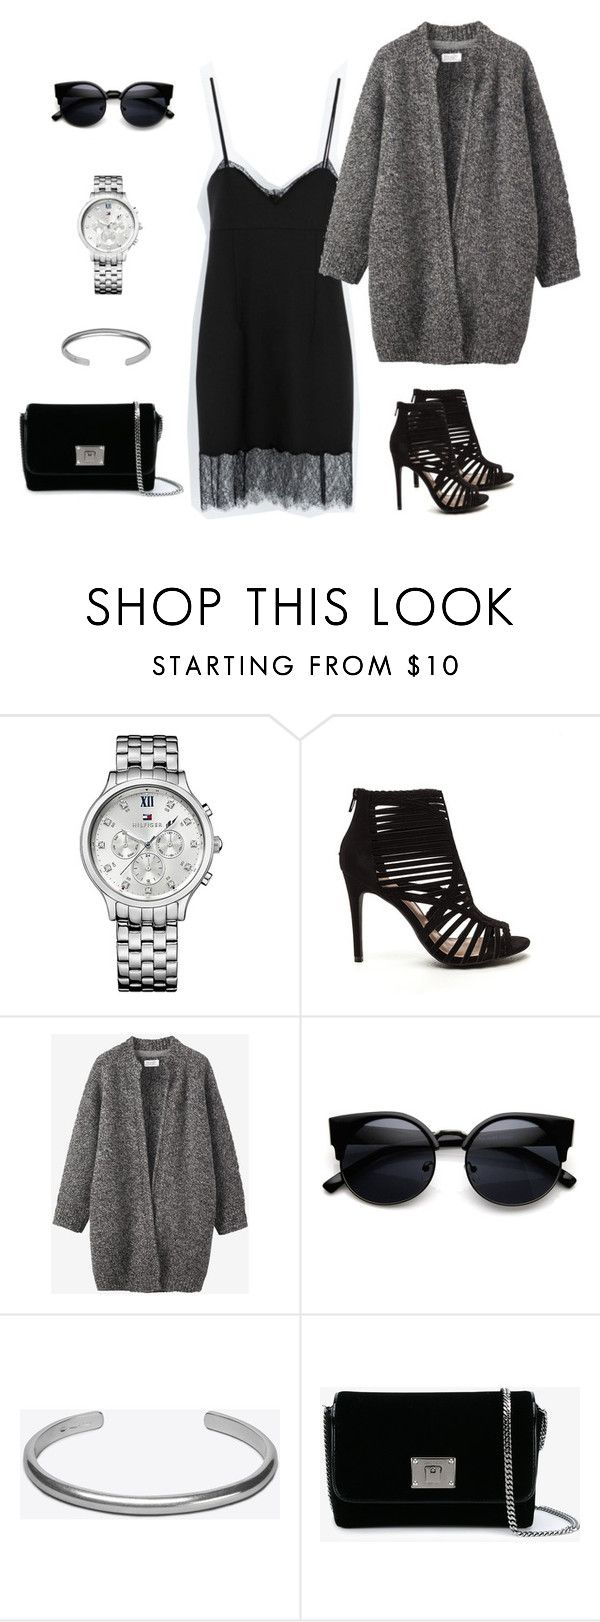 """total look"" by ya-irishka on Polyvore featuring мода, Tommy Hilfiger, Toast, Maison Margiela и Jimmy Choo"